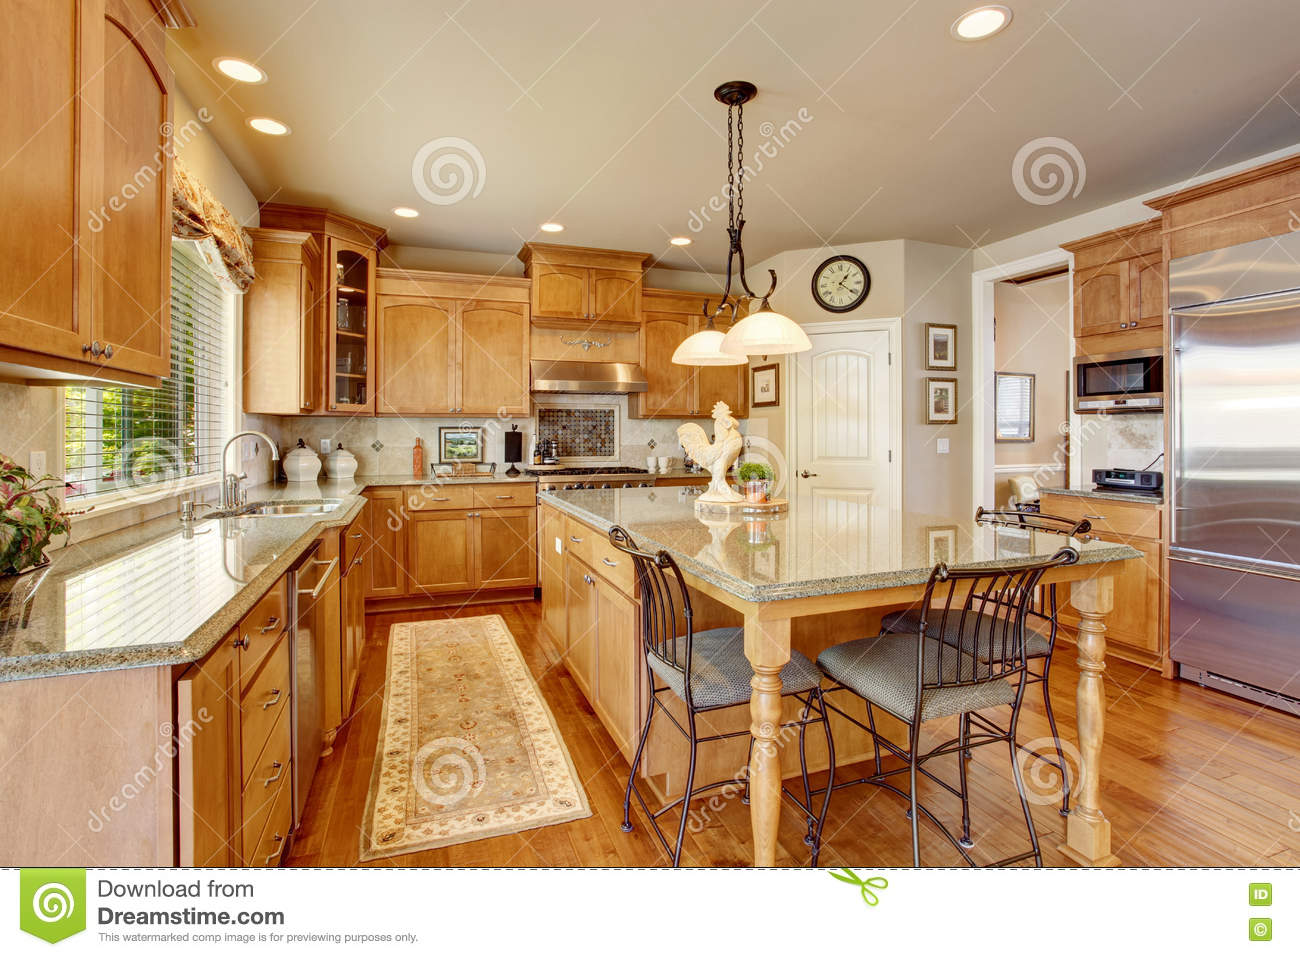 Classic American Kitchen Inerior With Brown Cabinets And ...